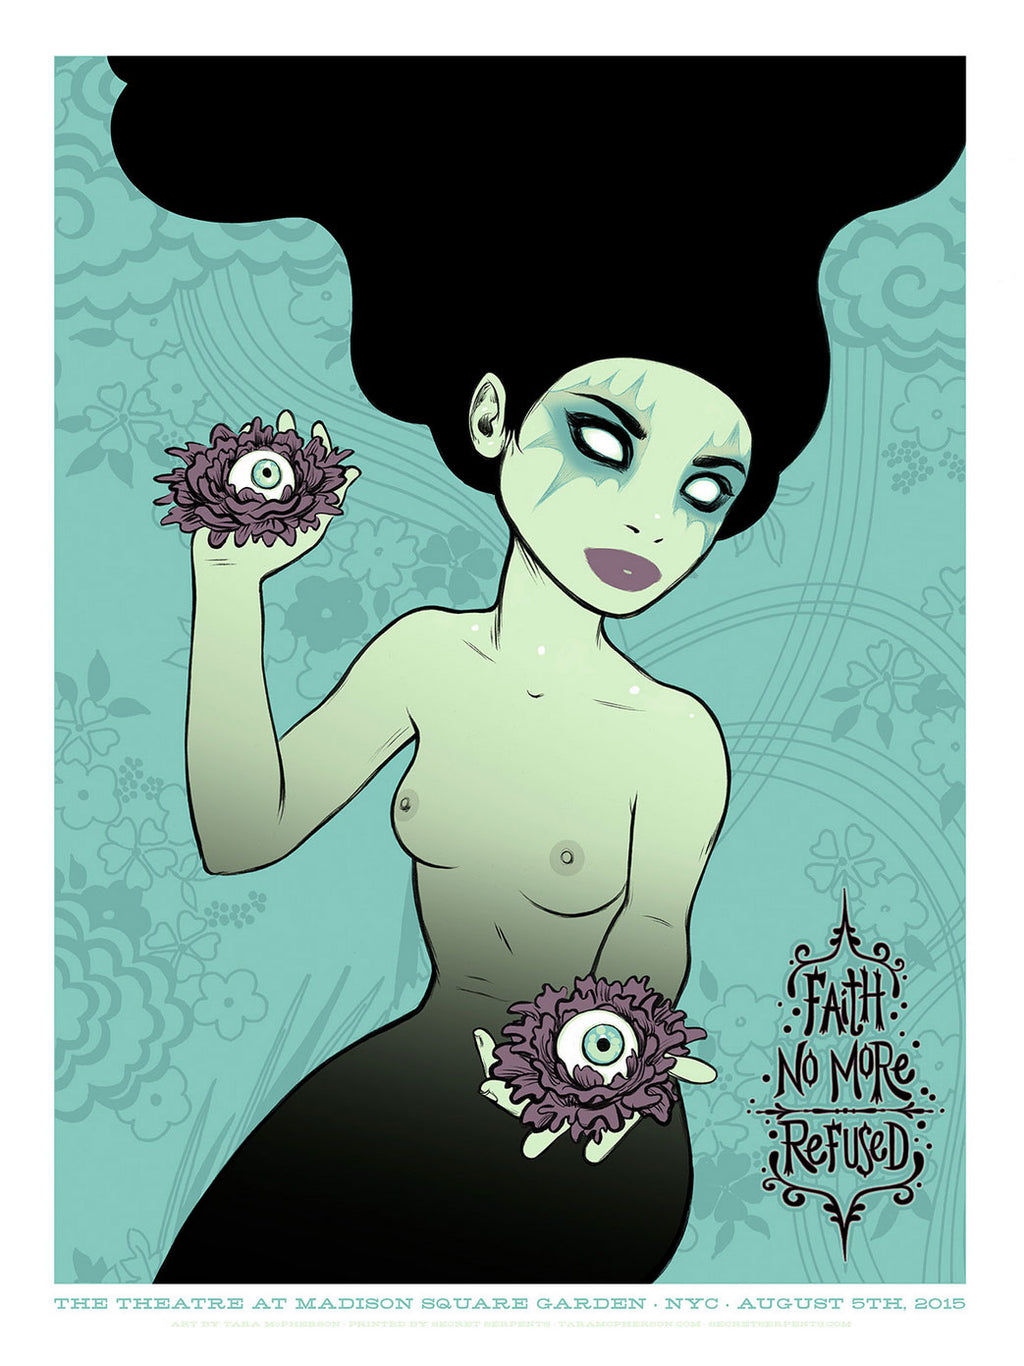 Tara McPherson 2015-08-05 Faith No More Blue